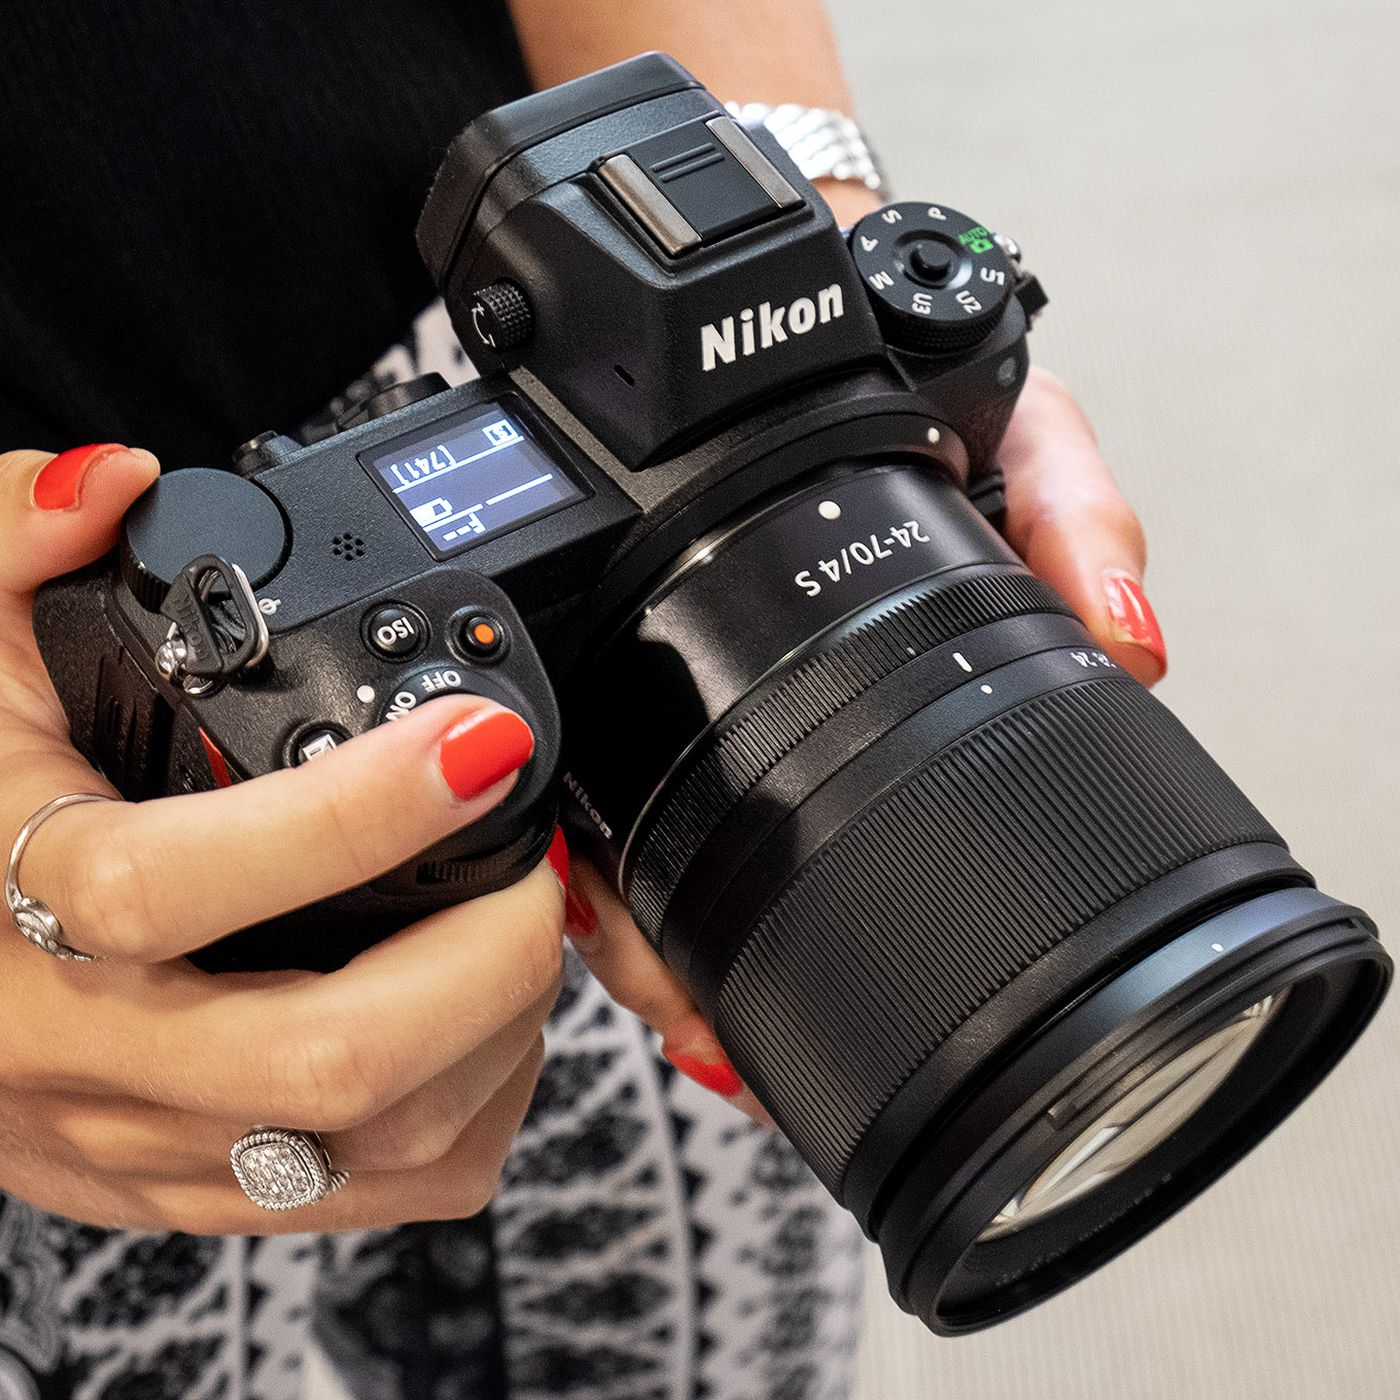 Nikon Is Extending Its Free Online Photography Classes Until The End Of May The Verge